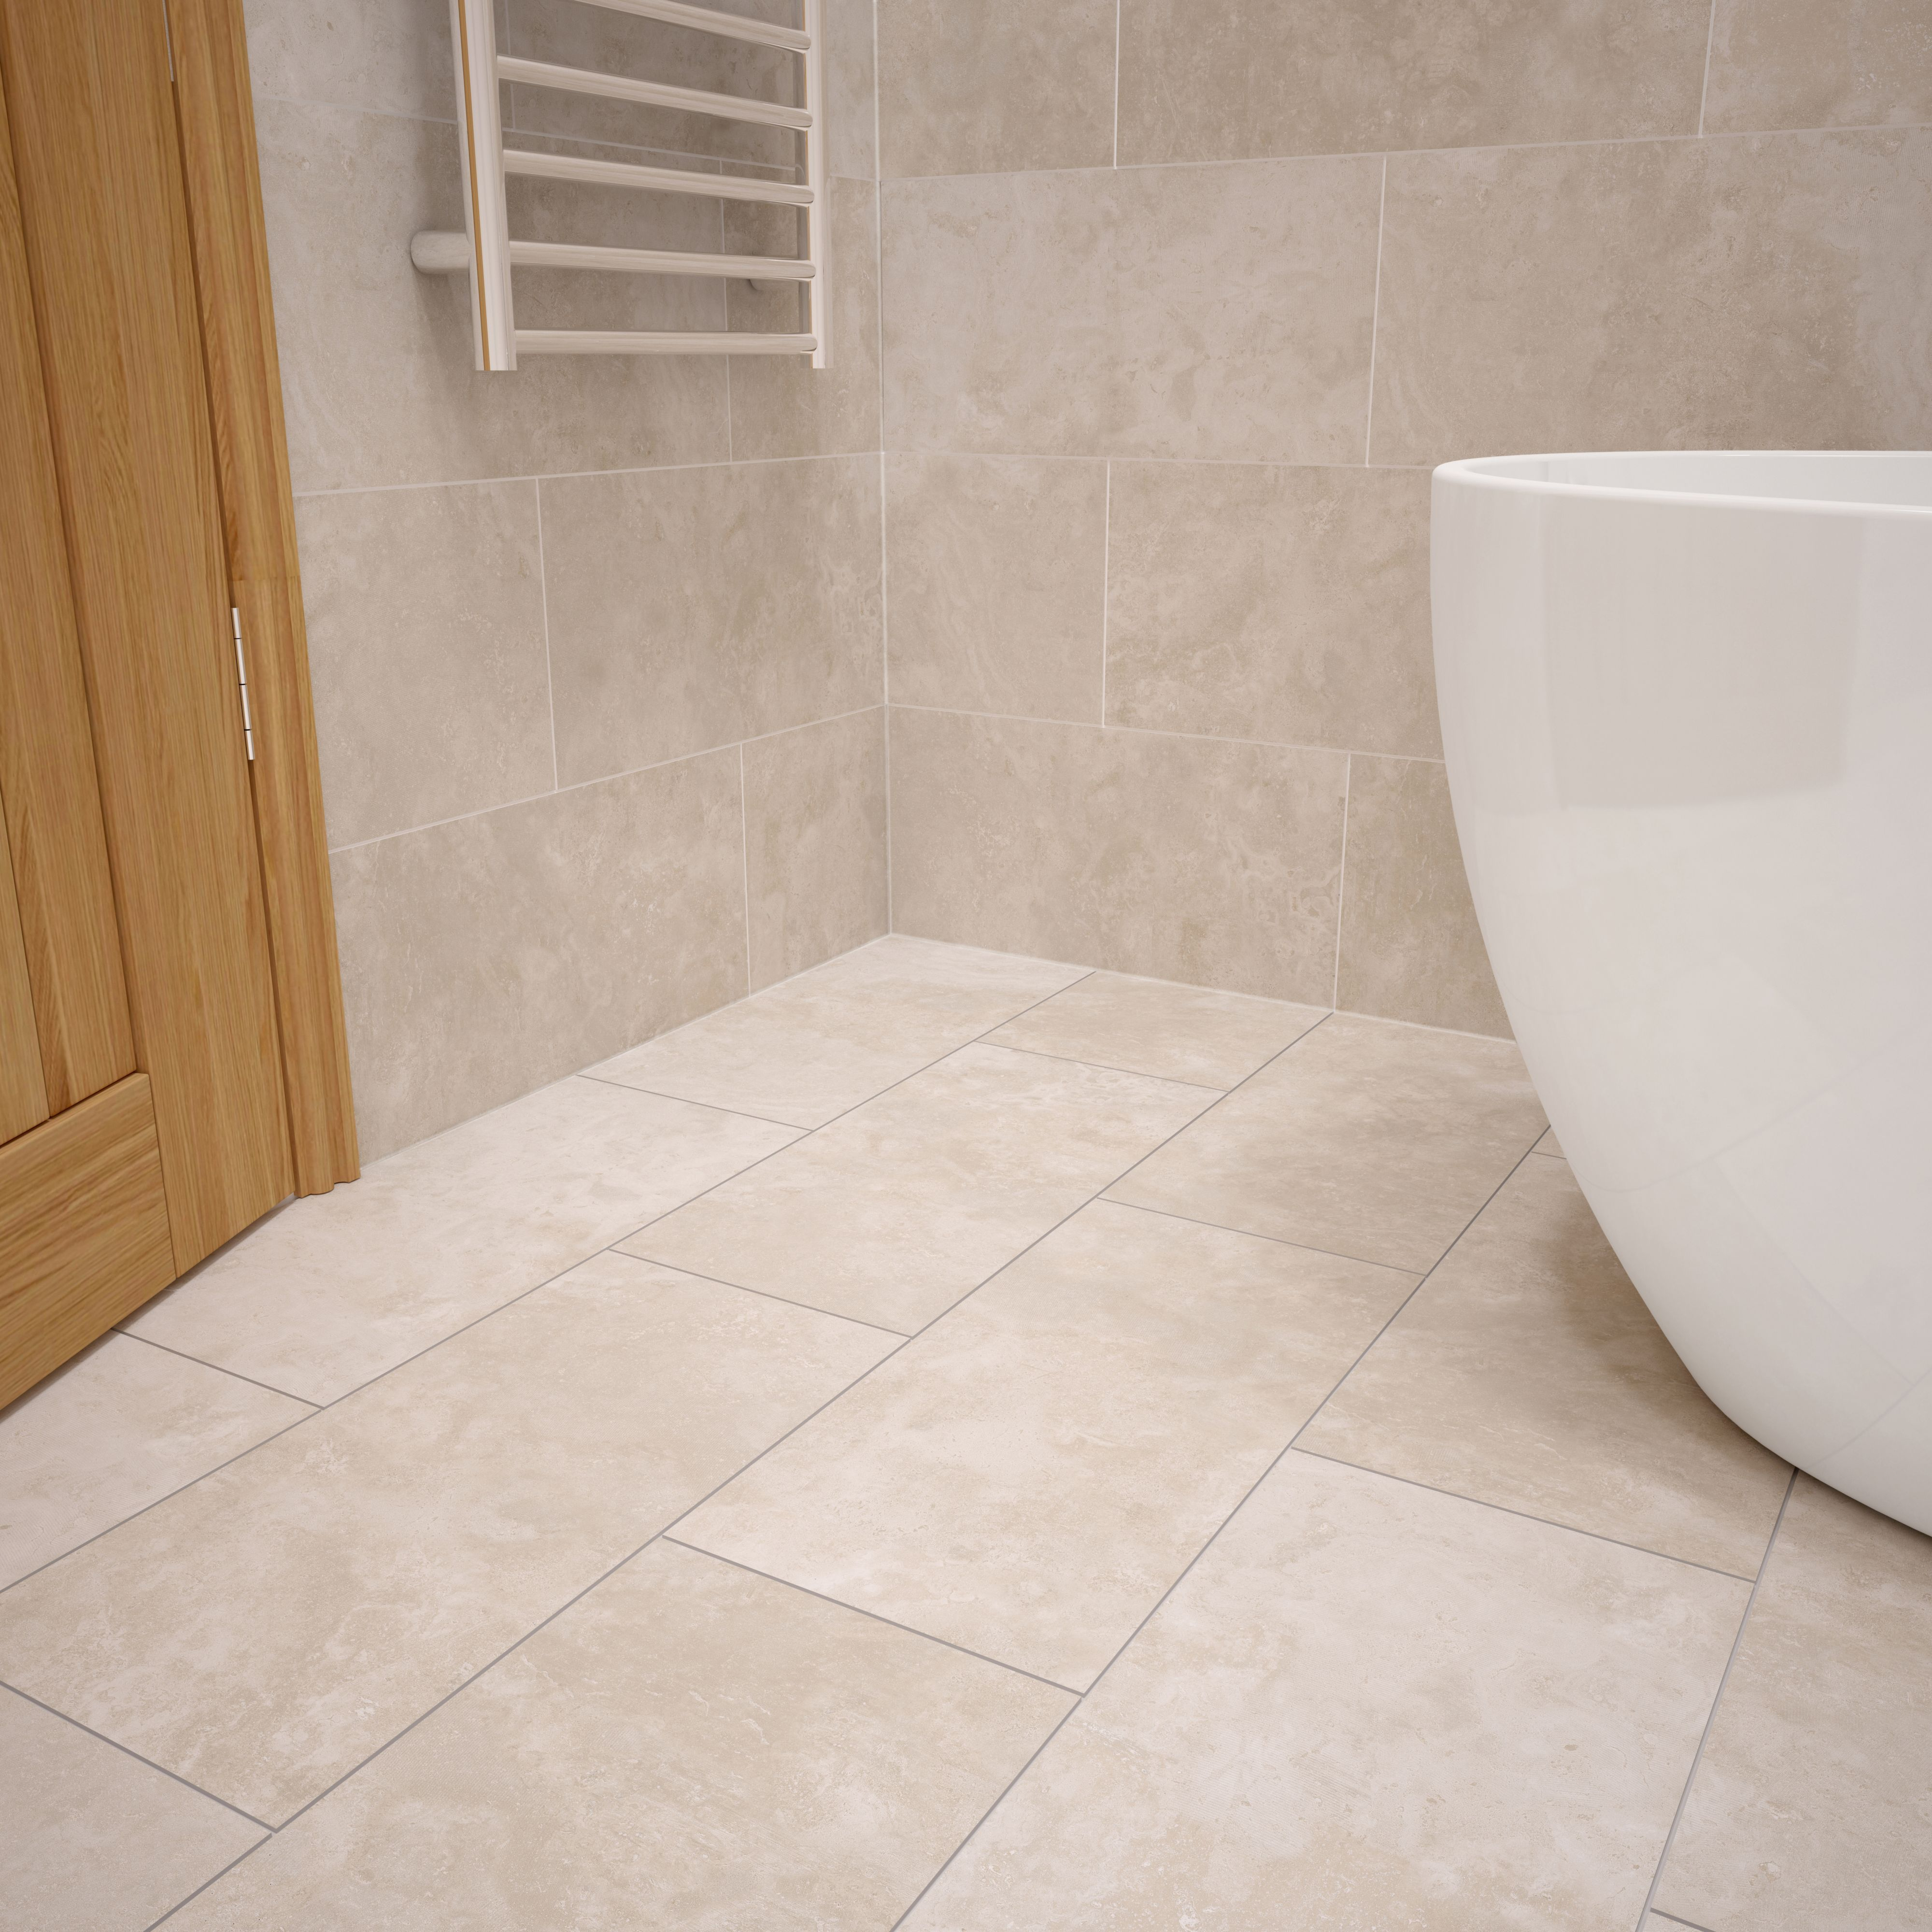 Urban Cement Grey Stone Effect Ceramic Wall Floor Tile: Urban Cement Cream Stone Effect Ceramic Wall & Floor Tile